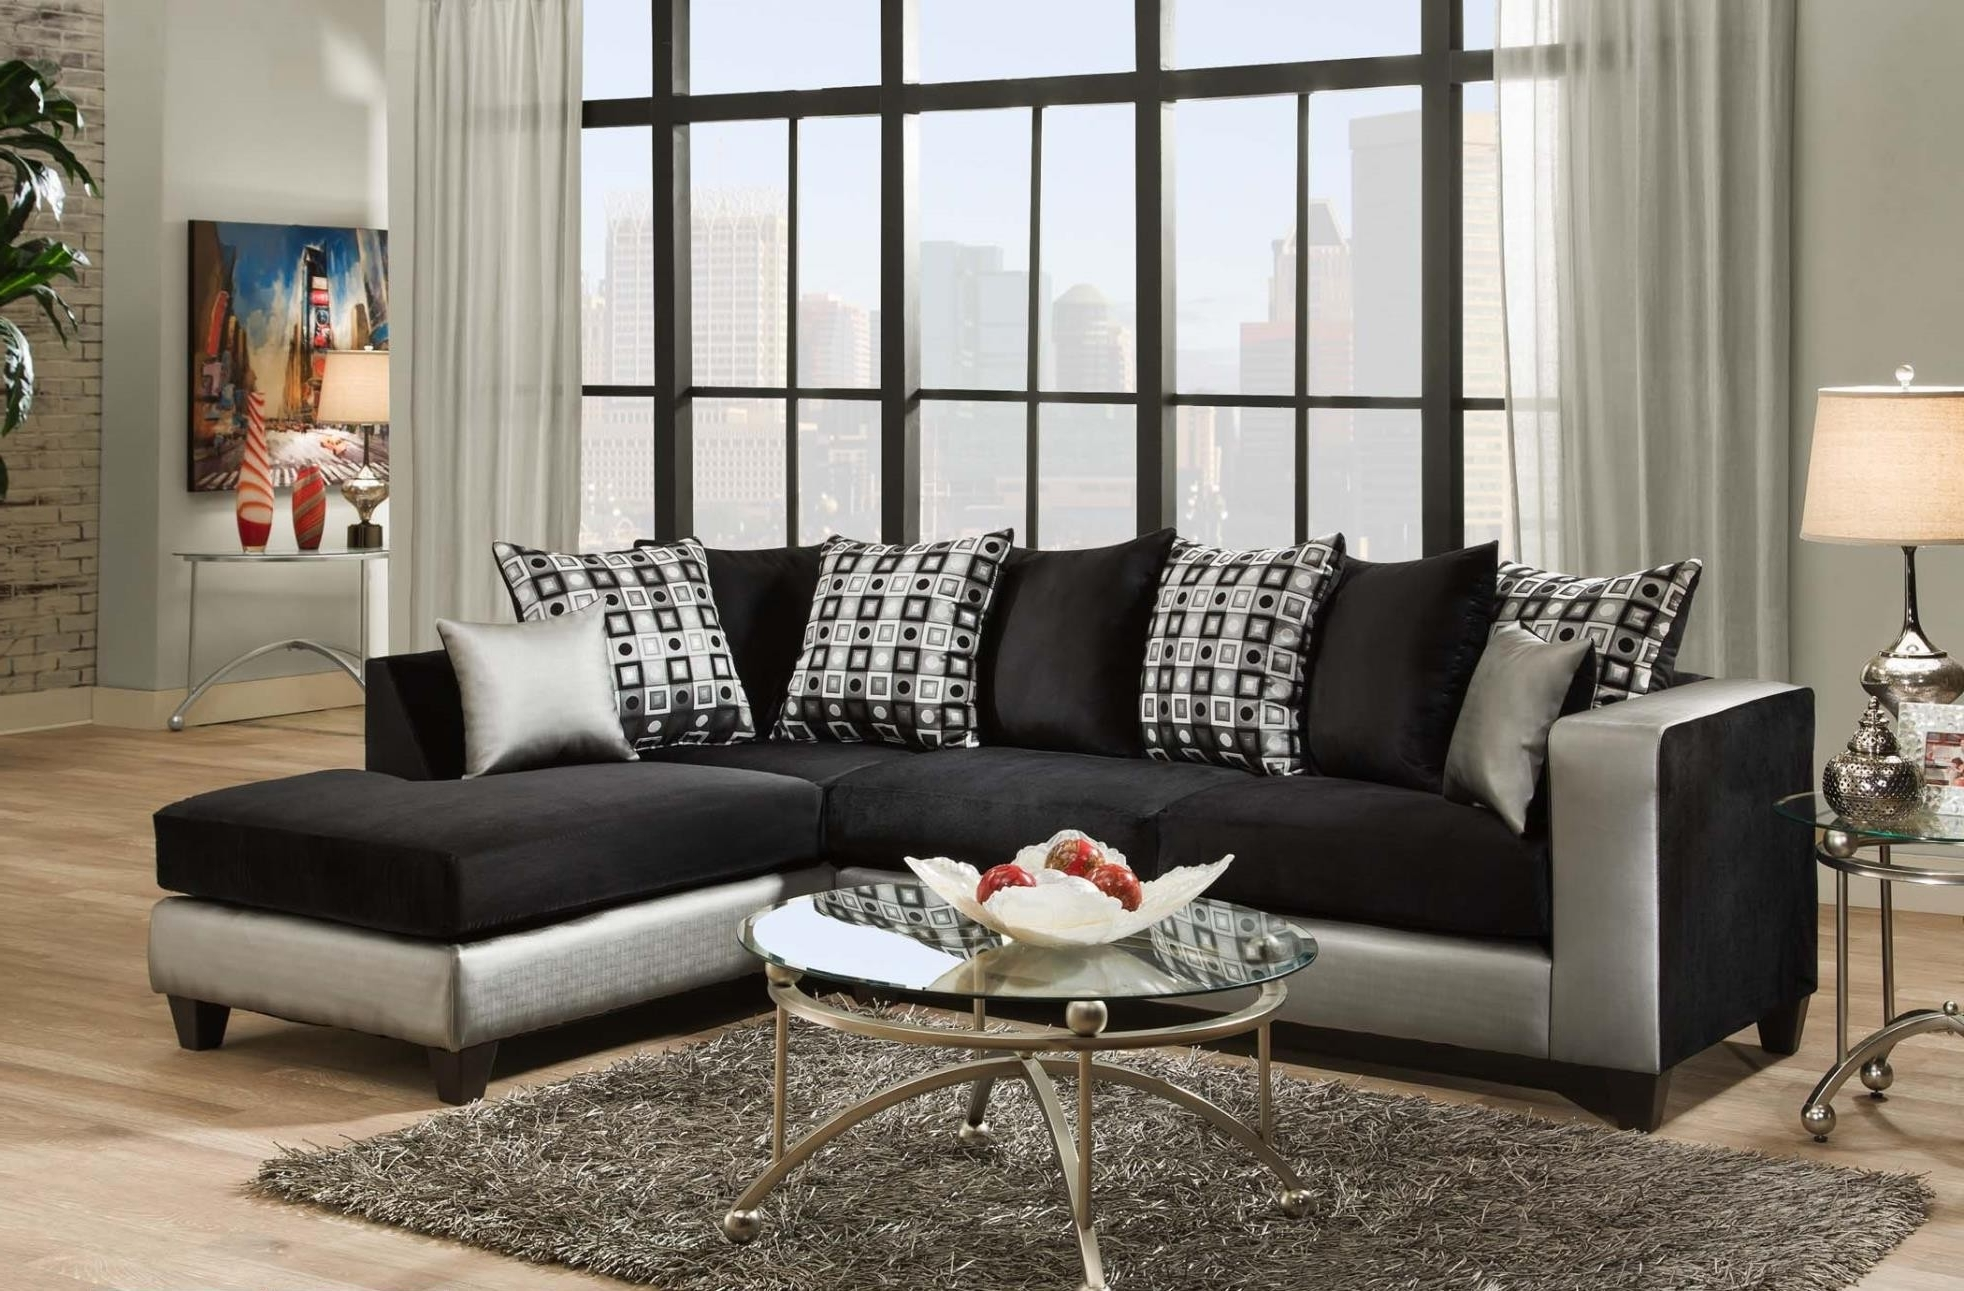 Well Liked Lovely Sectional Sofa Phoenix – Buildsimplehome Throughout Phoenix Sectional Sofas (View 18 of 20)